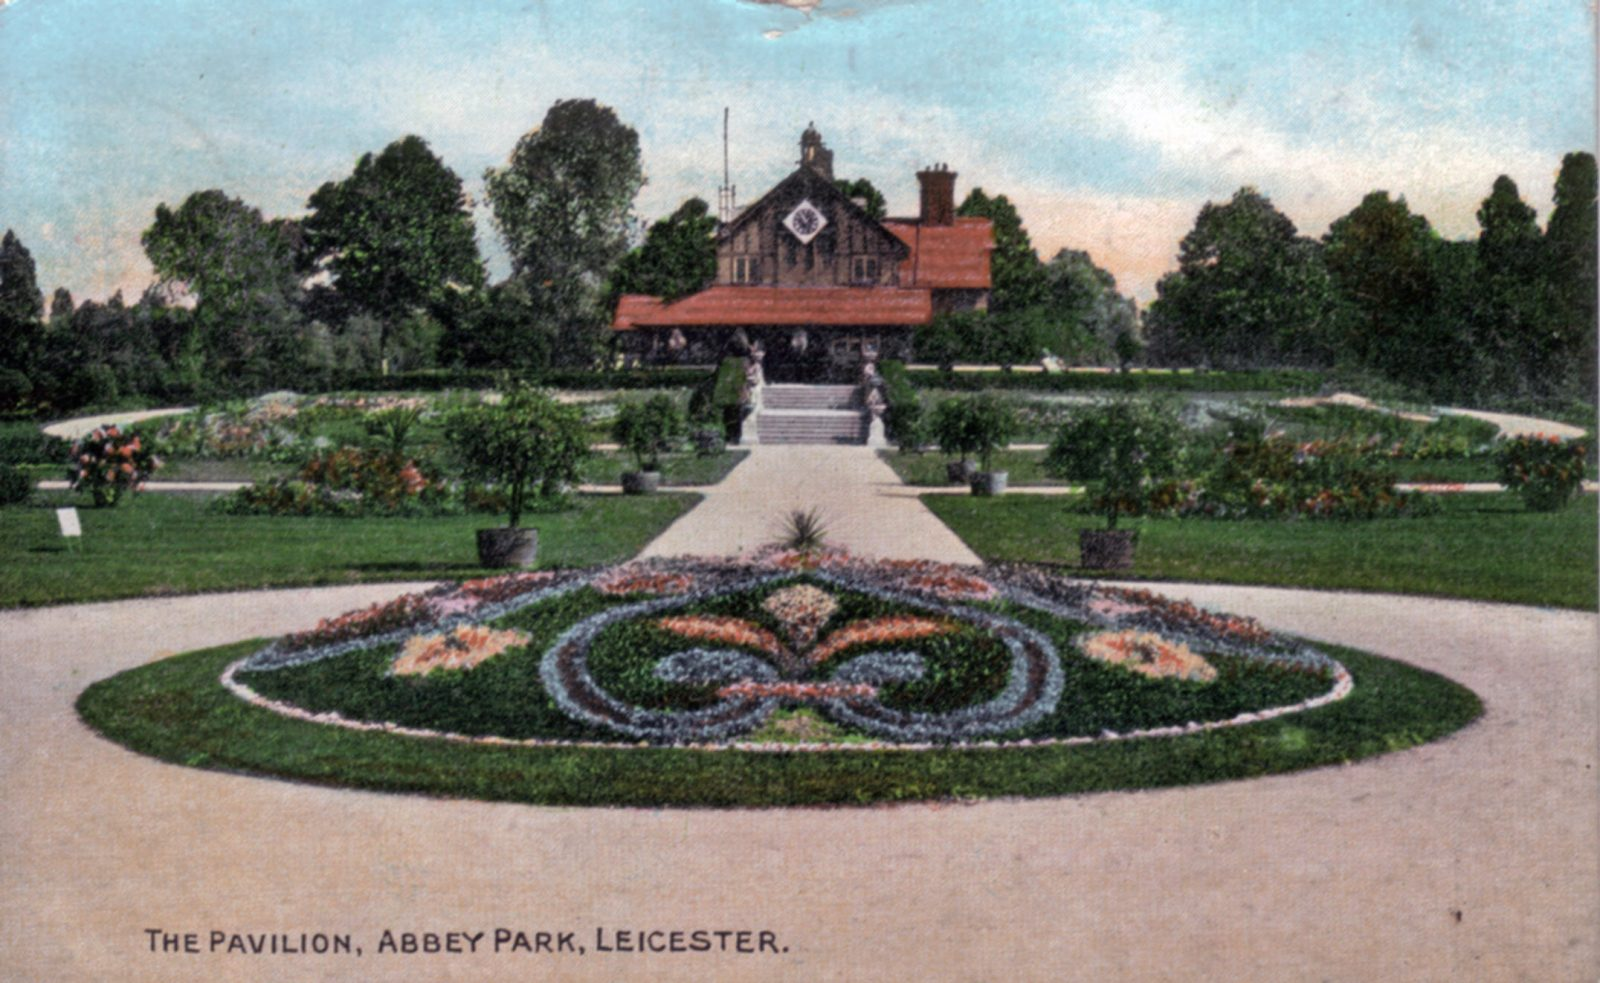 Abbey Park, Leicester. 1901-1920: The Pavilion and formal bedding. (File:1275)